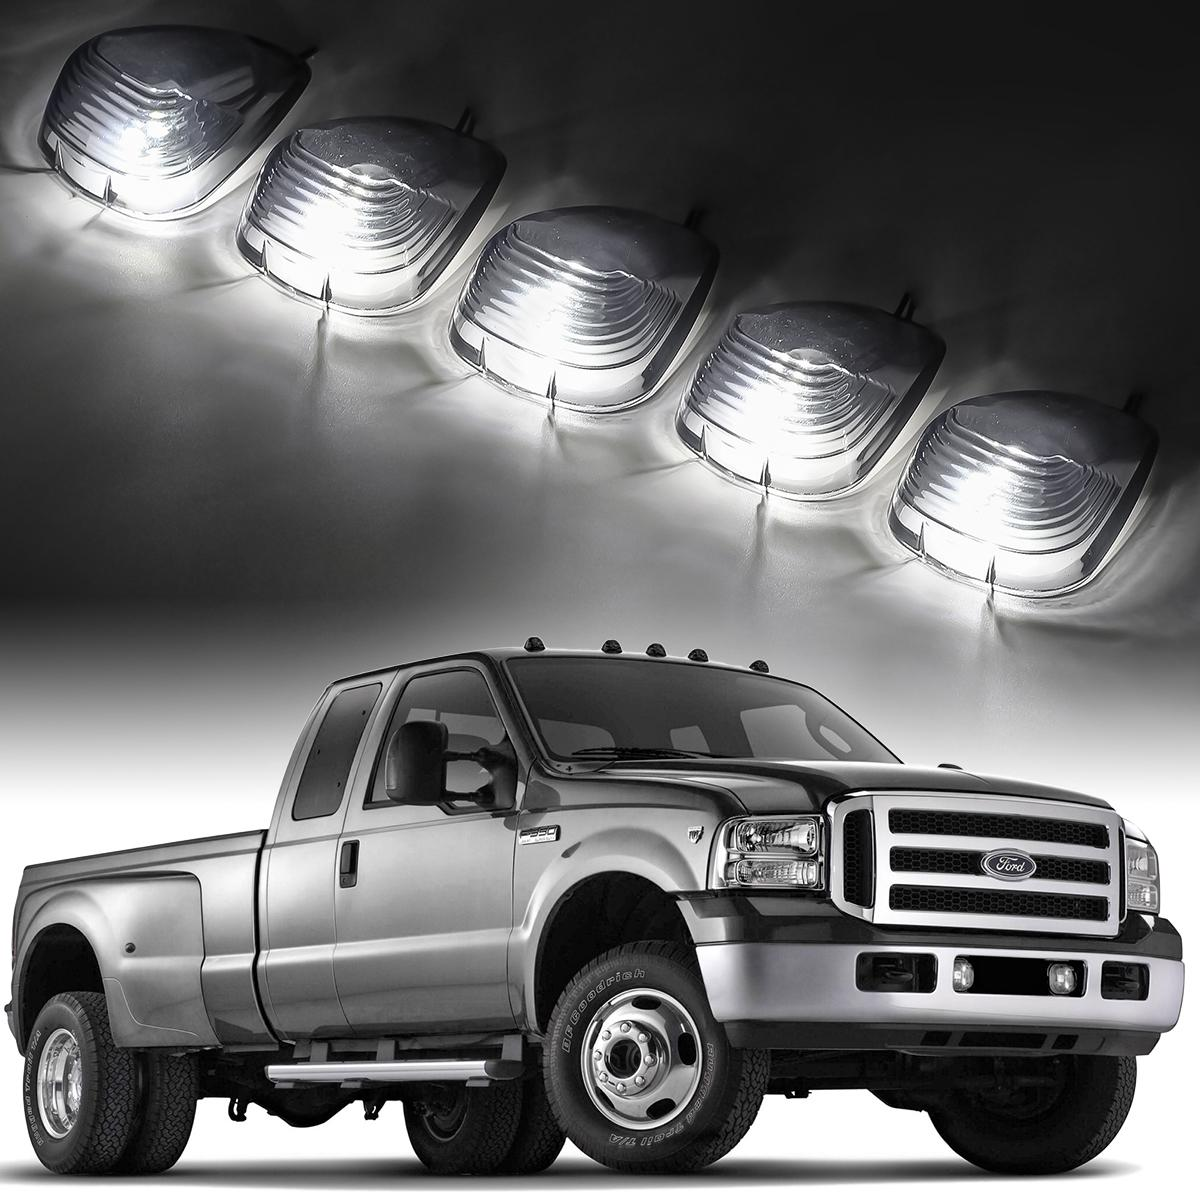 2004 Ford F350 Lights Wiring Diagram Further Ford F 350 Wiring Diagram